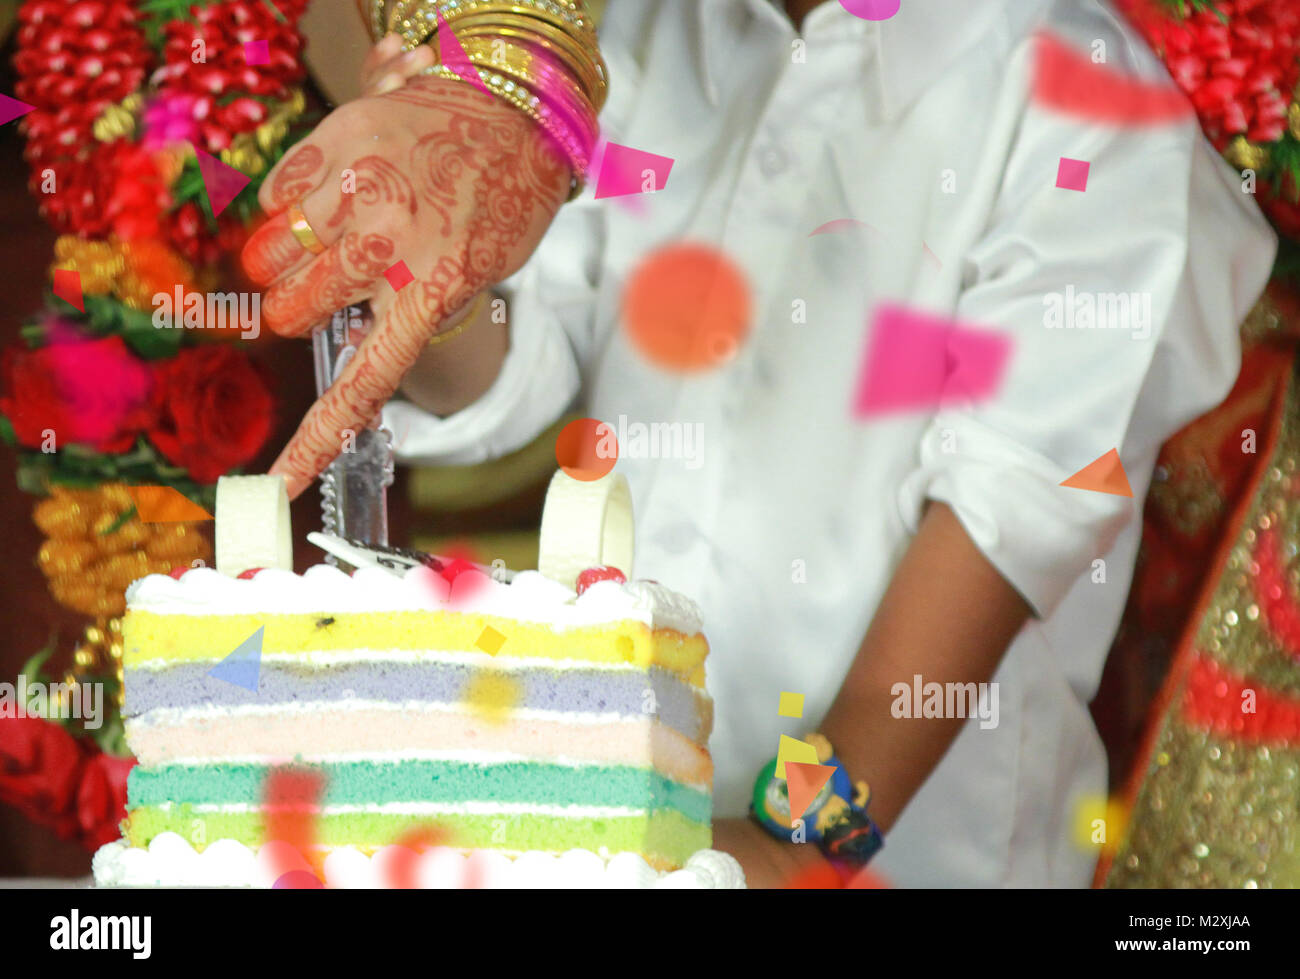 Close Up Woman Hand Cutting Cake Happy Birthday